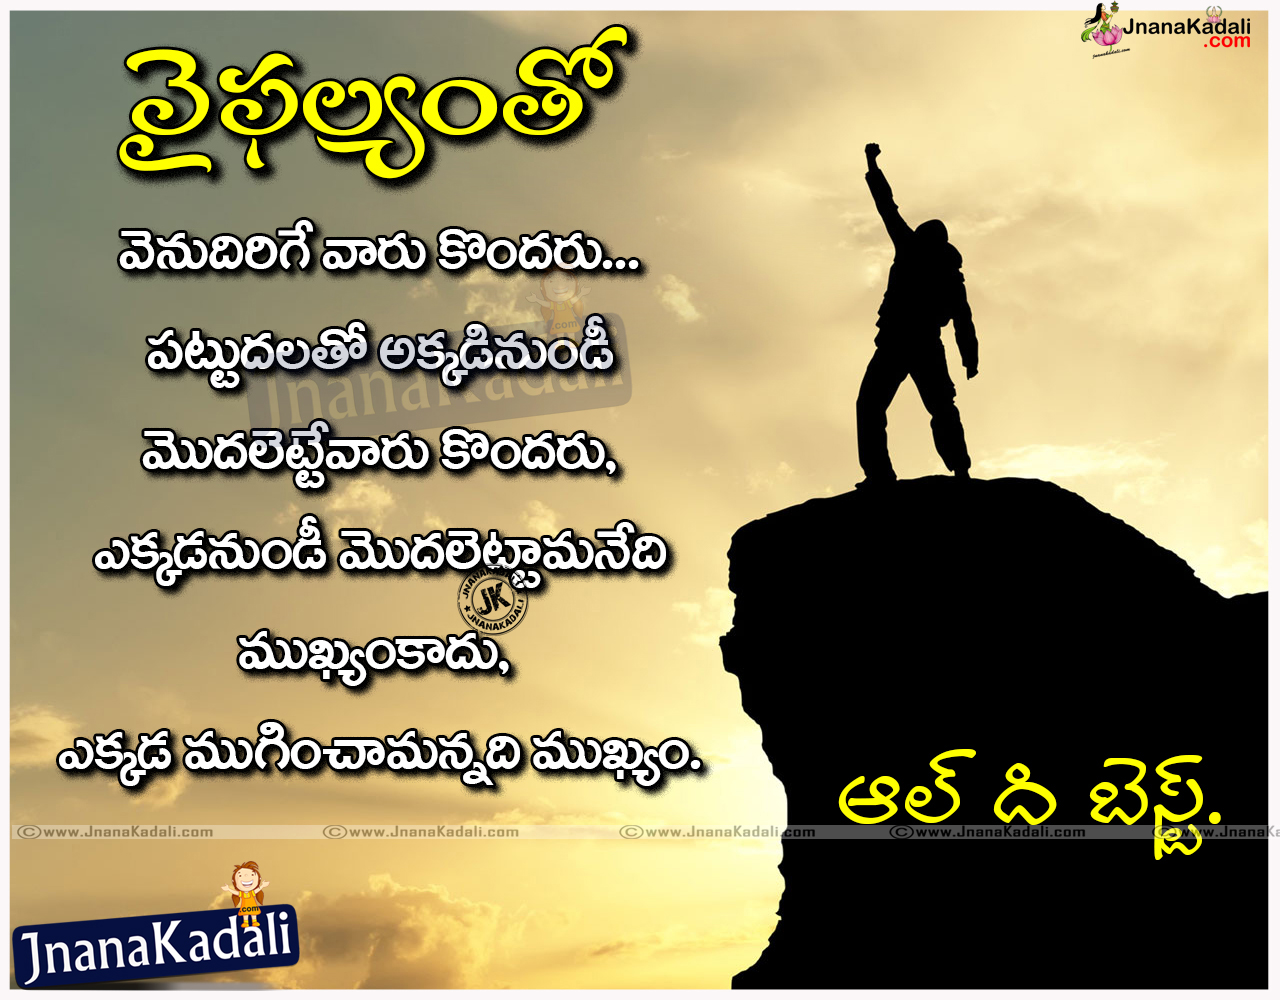 Inspiring Quotes On Life And Success Best In Telugu With Beautiful Jnana